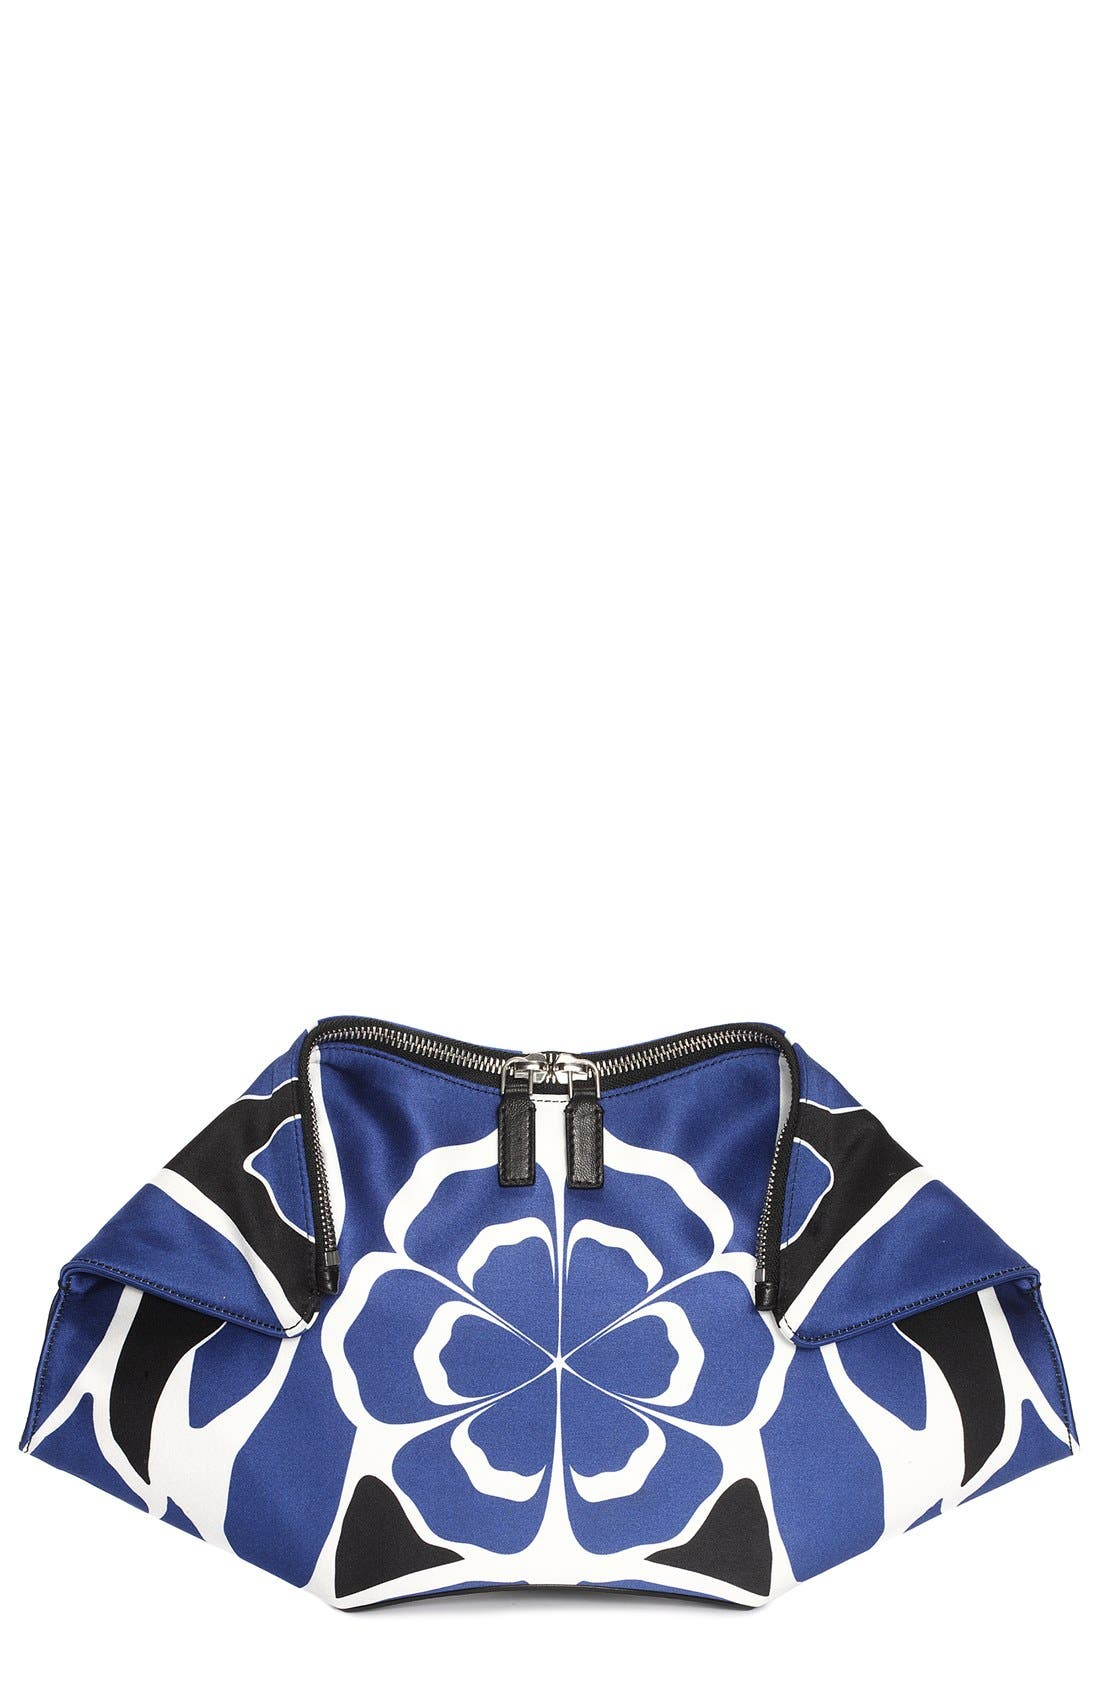 Alternate Image 1 Selected - Alexander McQueen 'De Manta' Silk Clutch